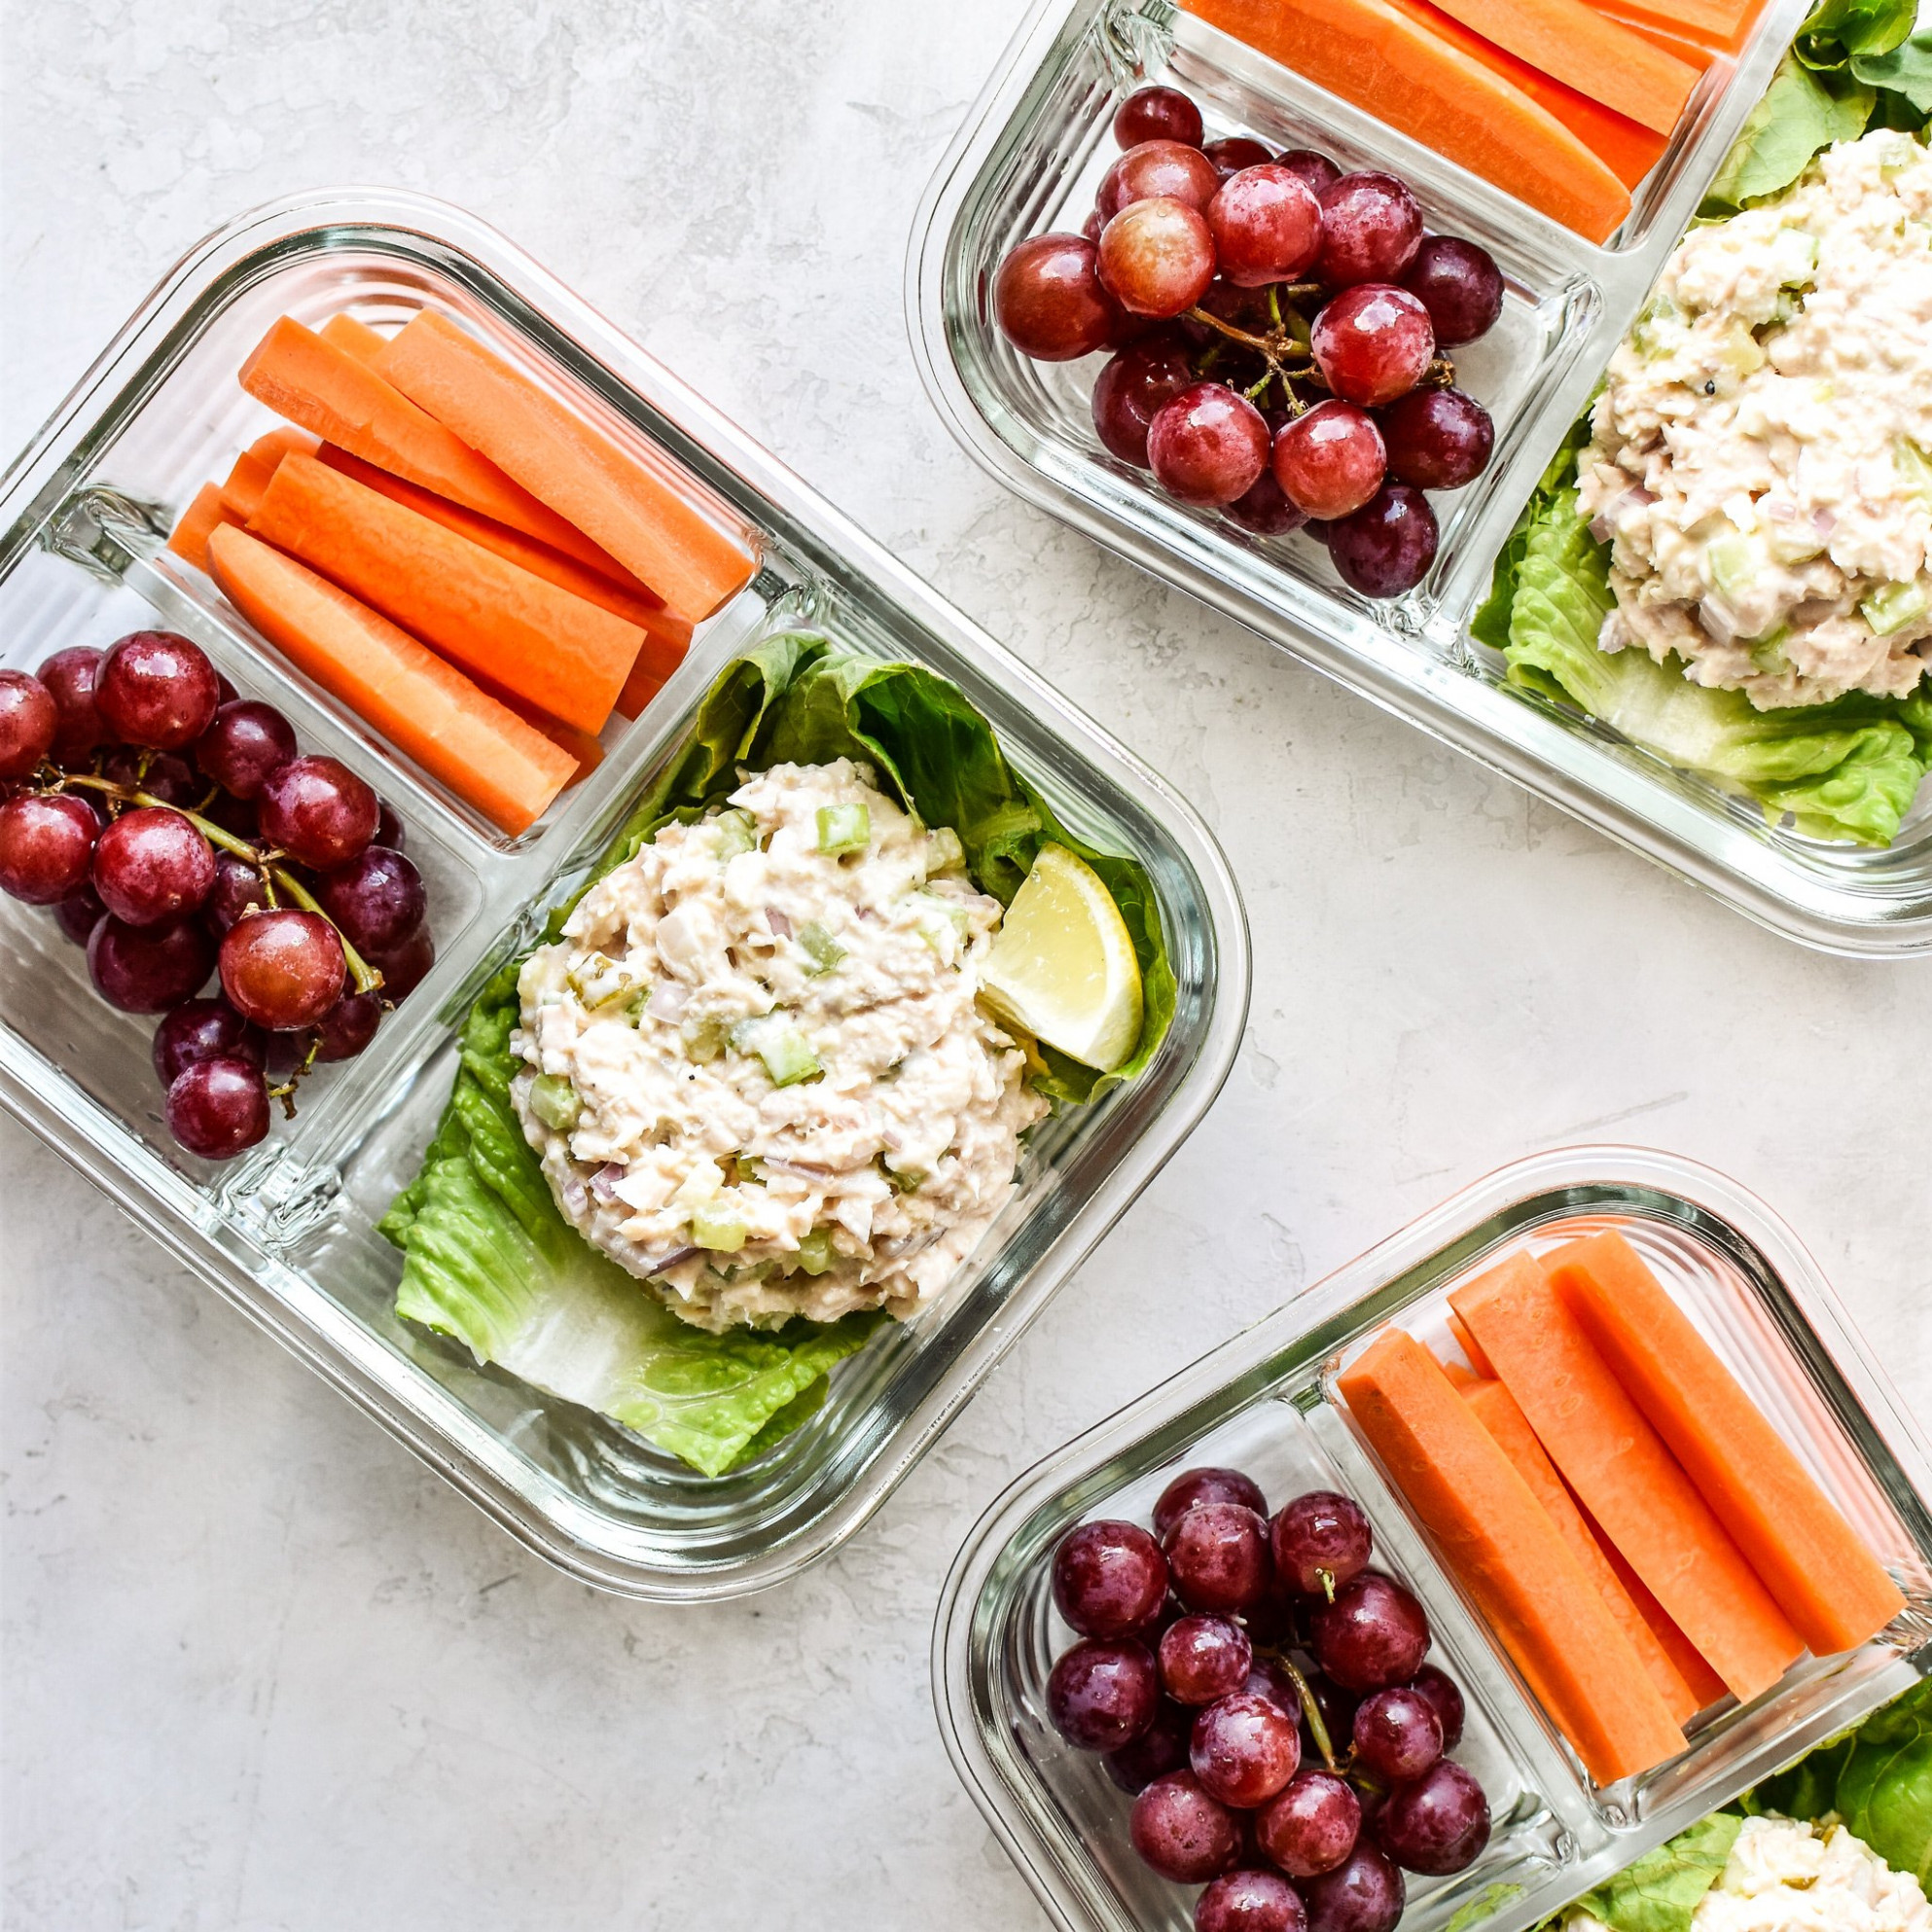 Low Carb Tuna Salad Lettuce Wraps Meal Prep - Project Meal Plan - Recipes No Carbs Dinner